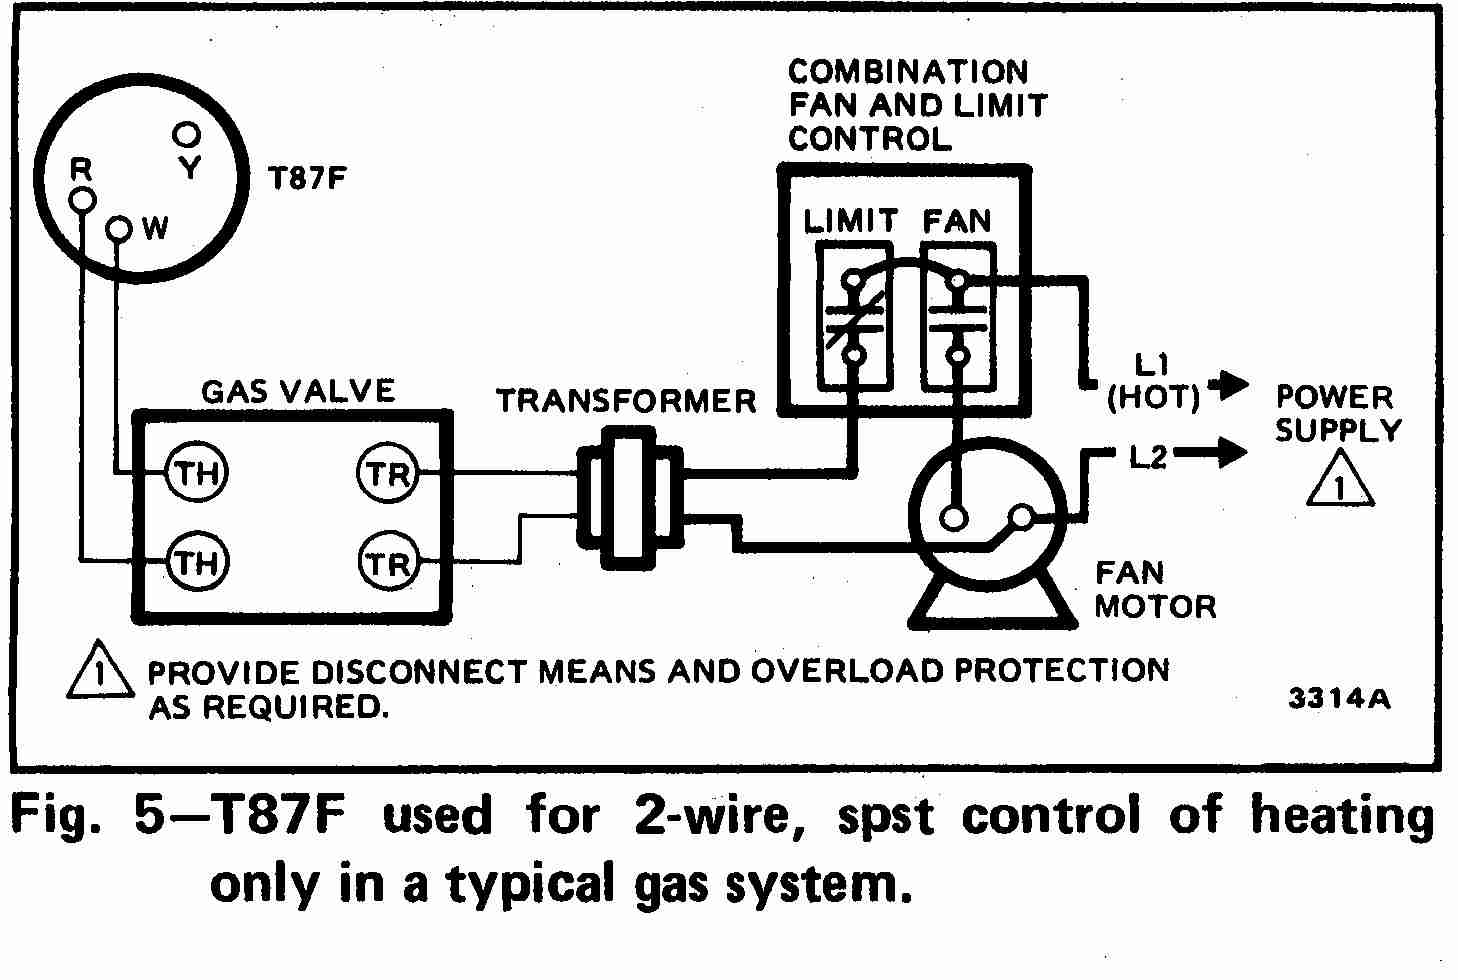 Zone Valve Wiring Installation Instructions Guide To Heating How Wire A Light Switch Diagram House Flair 2 Thermosat